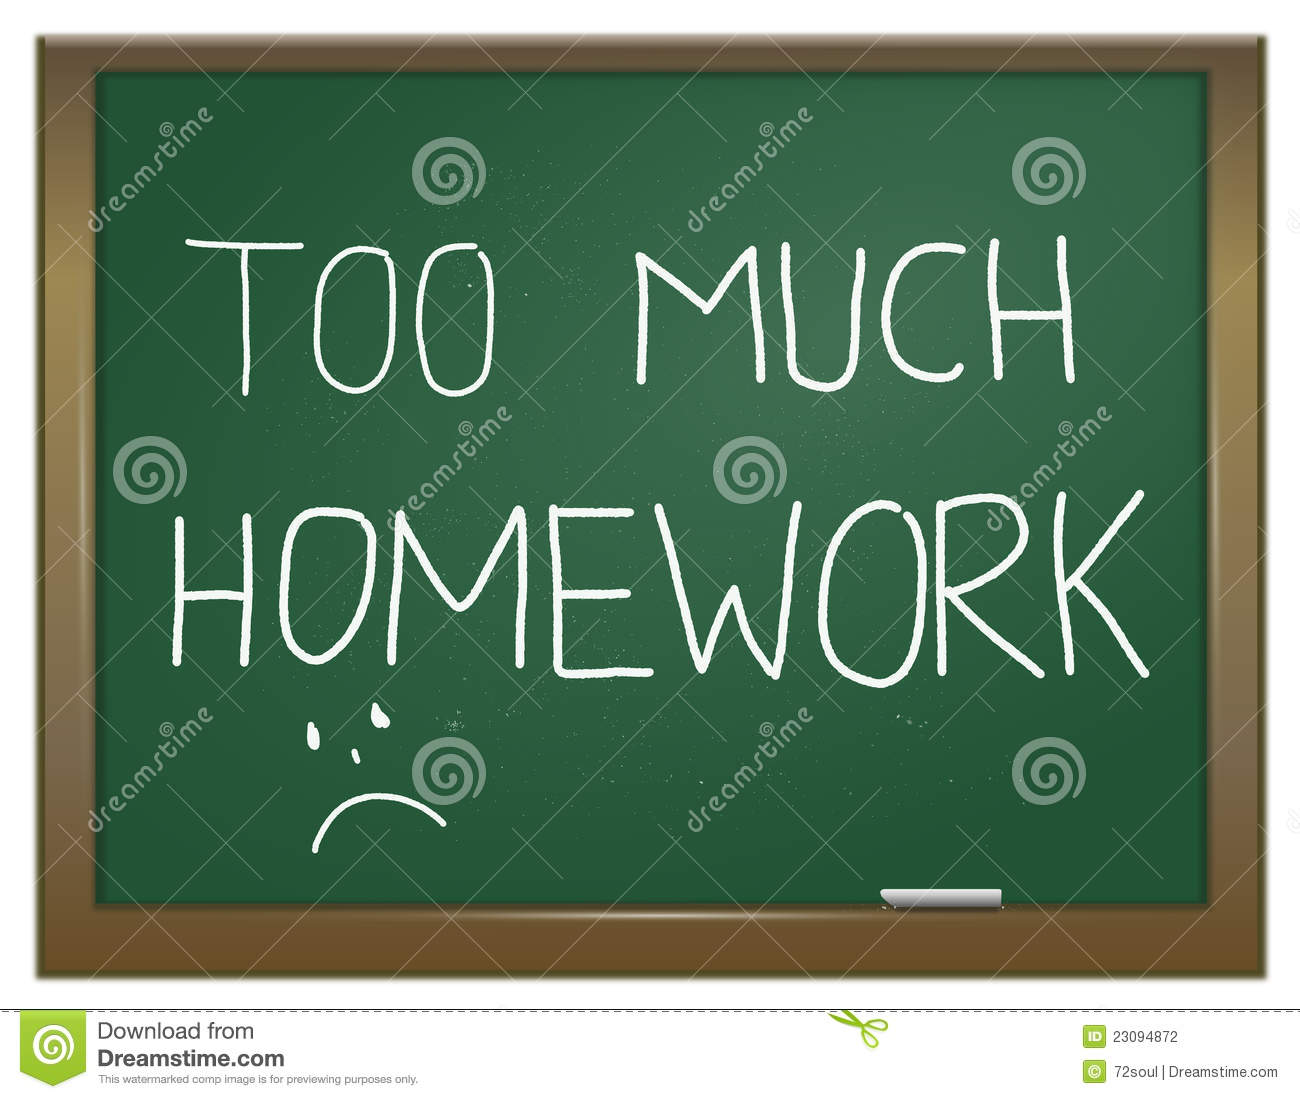 Stock Photography Homework Stress Image23094872 on How To Teach English For Primary School S